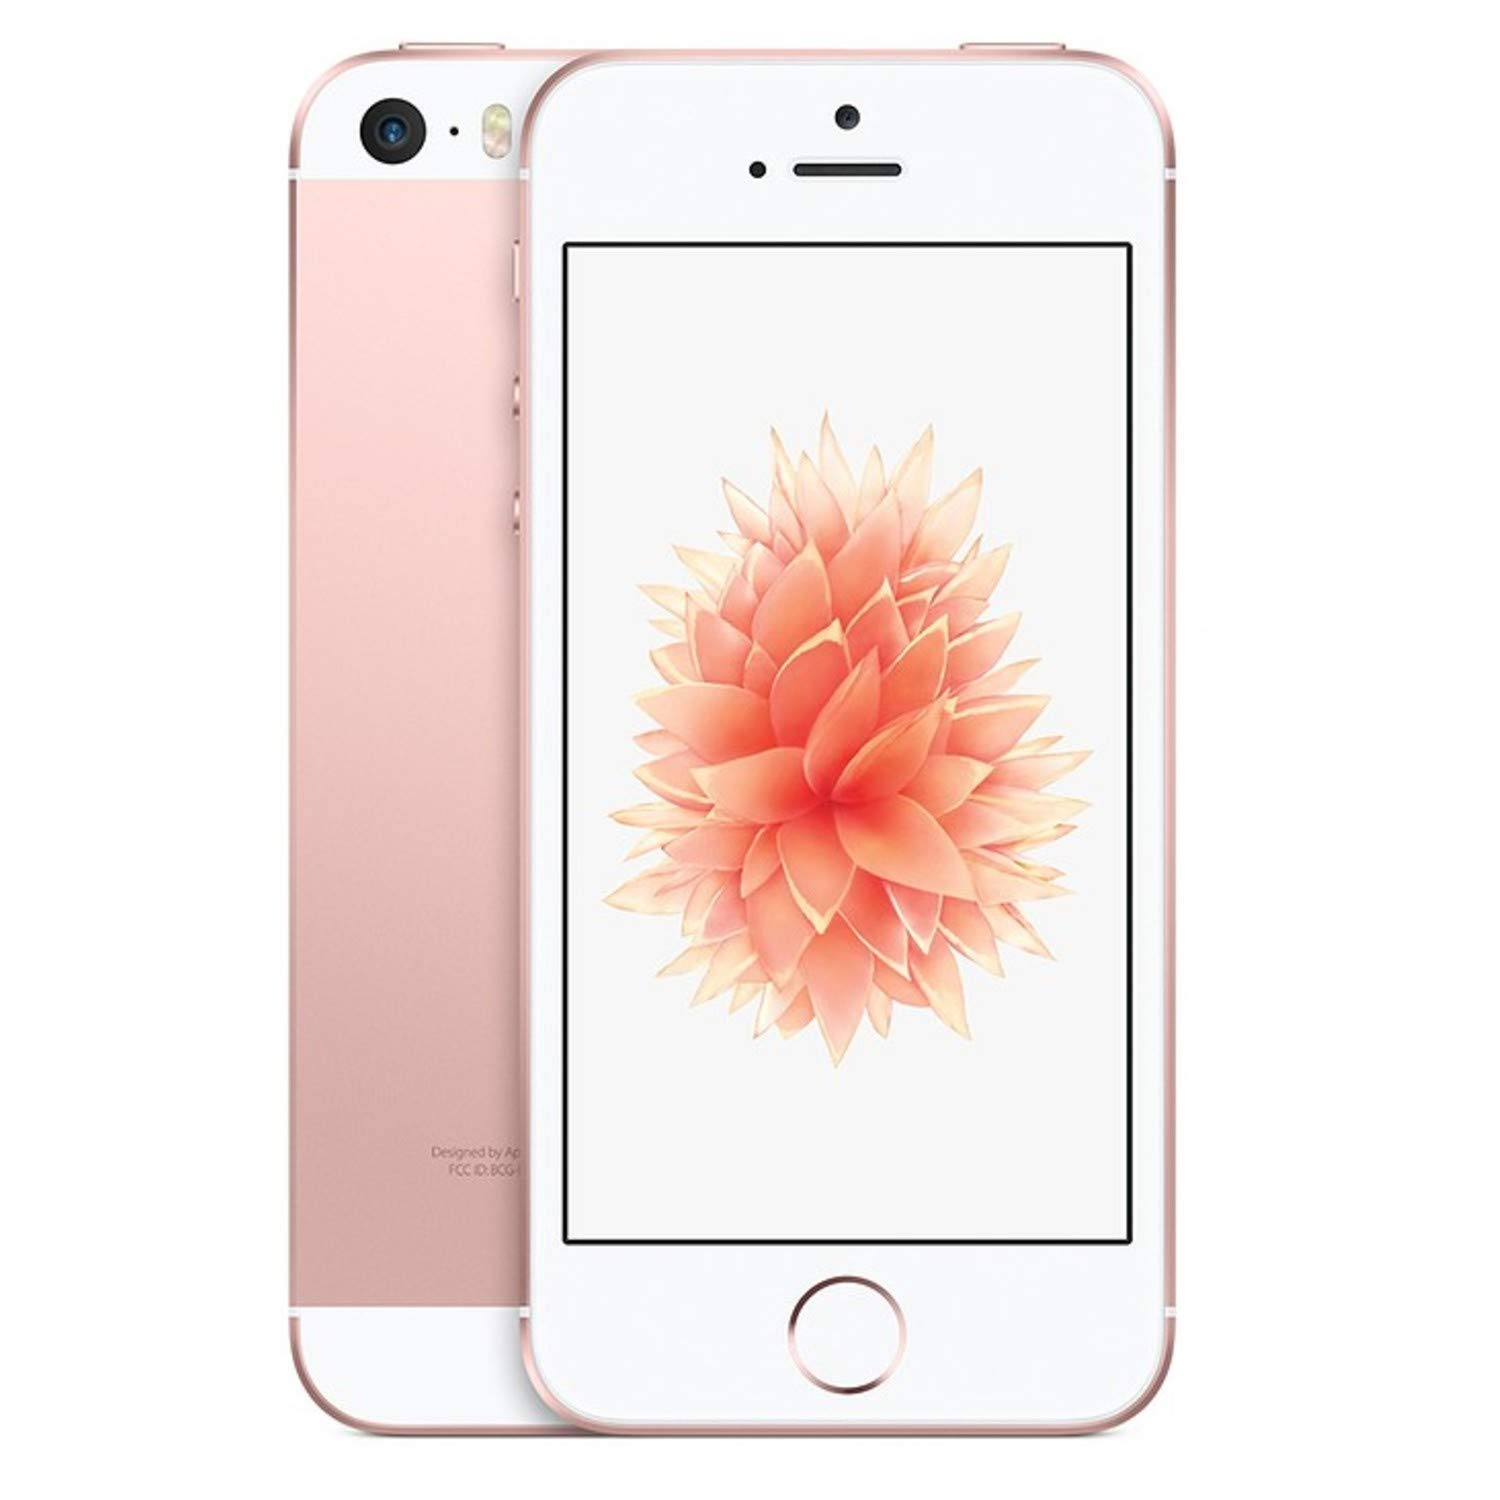 Apple iPhone SE, GSM Unlocked Phone, 16GB - Rose Gold (Renewed) by Apple